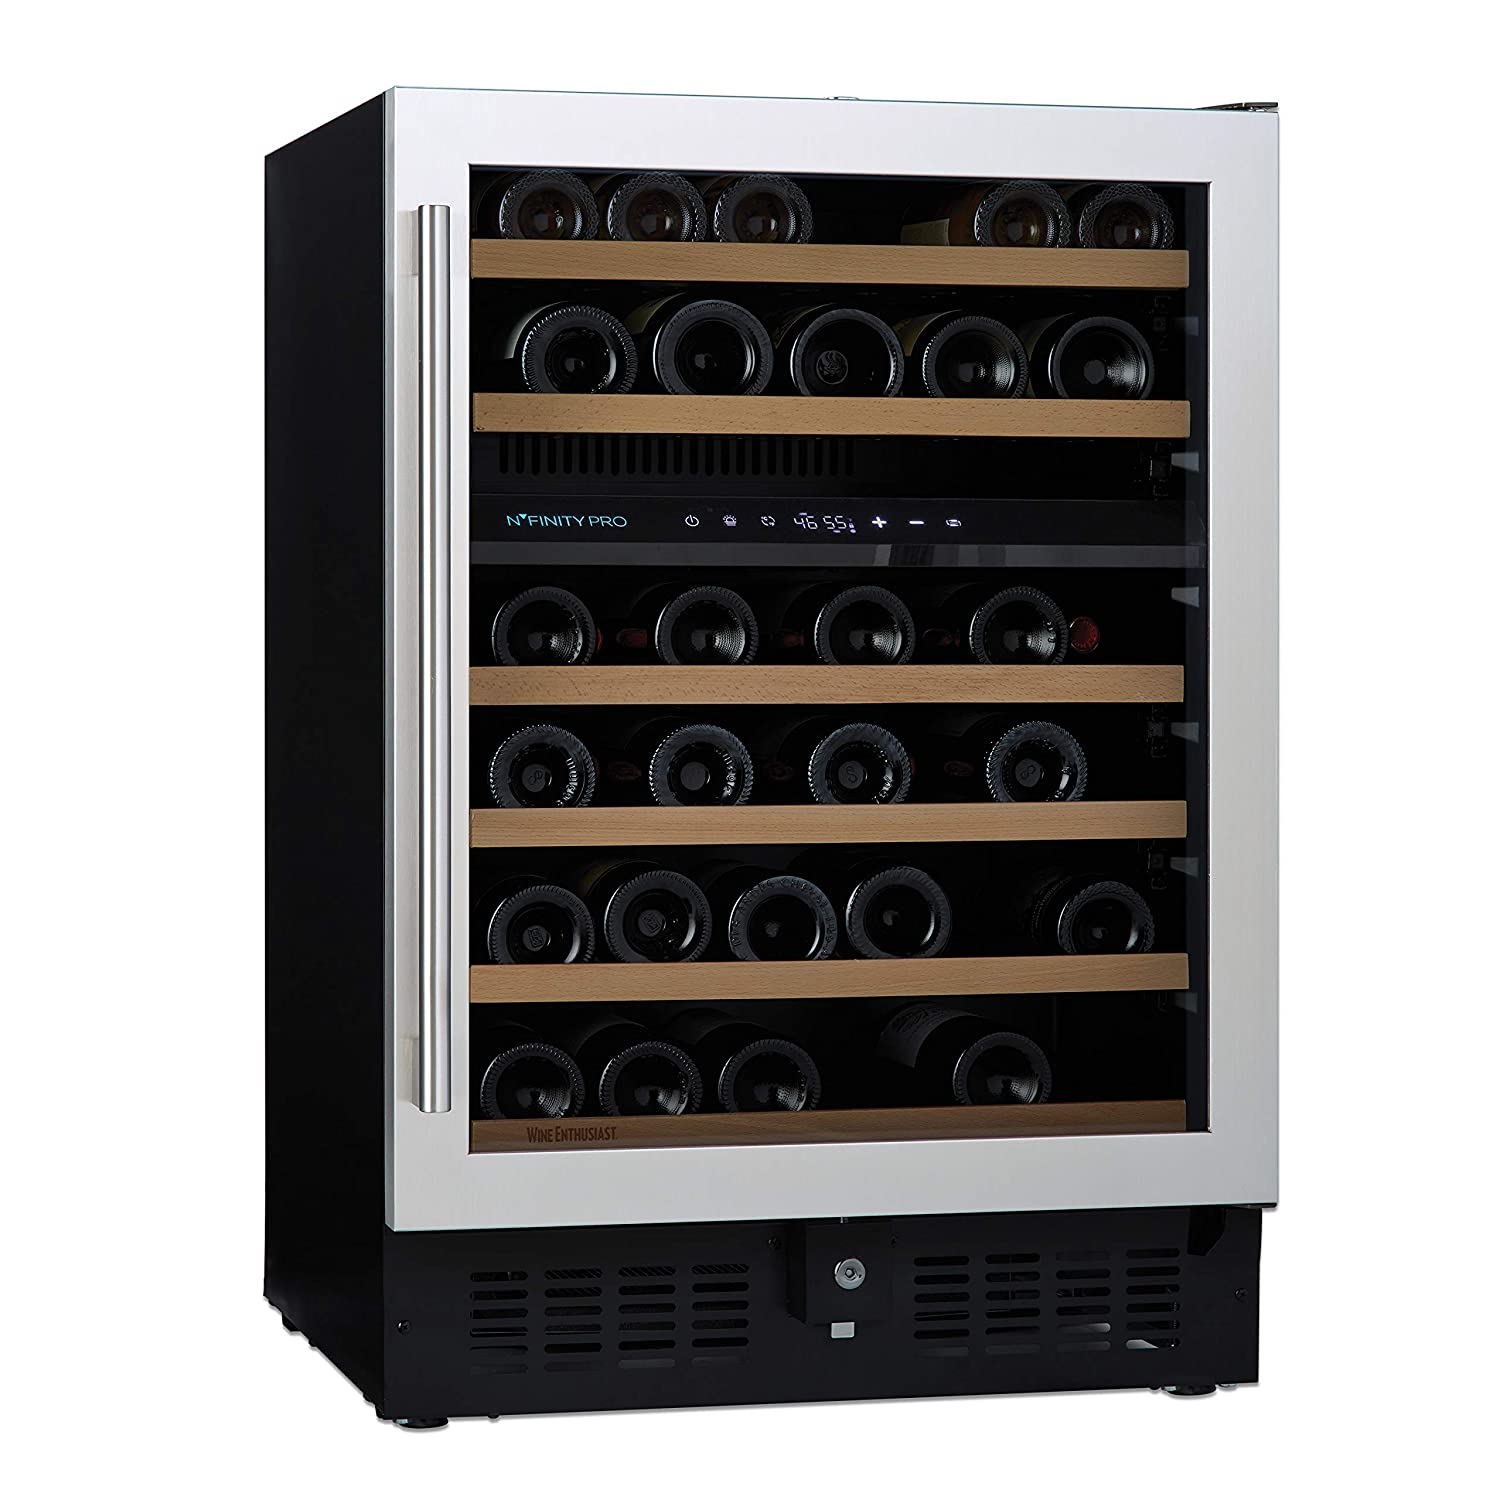 N'FINITY PRO S by Wine Enthusiast Dual Zone Wine Cellar - Stainless Steel Door with Right Hinge